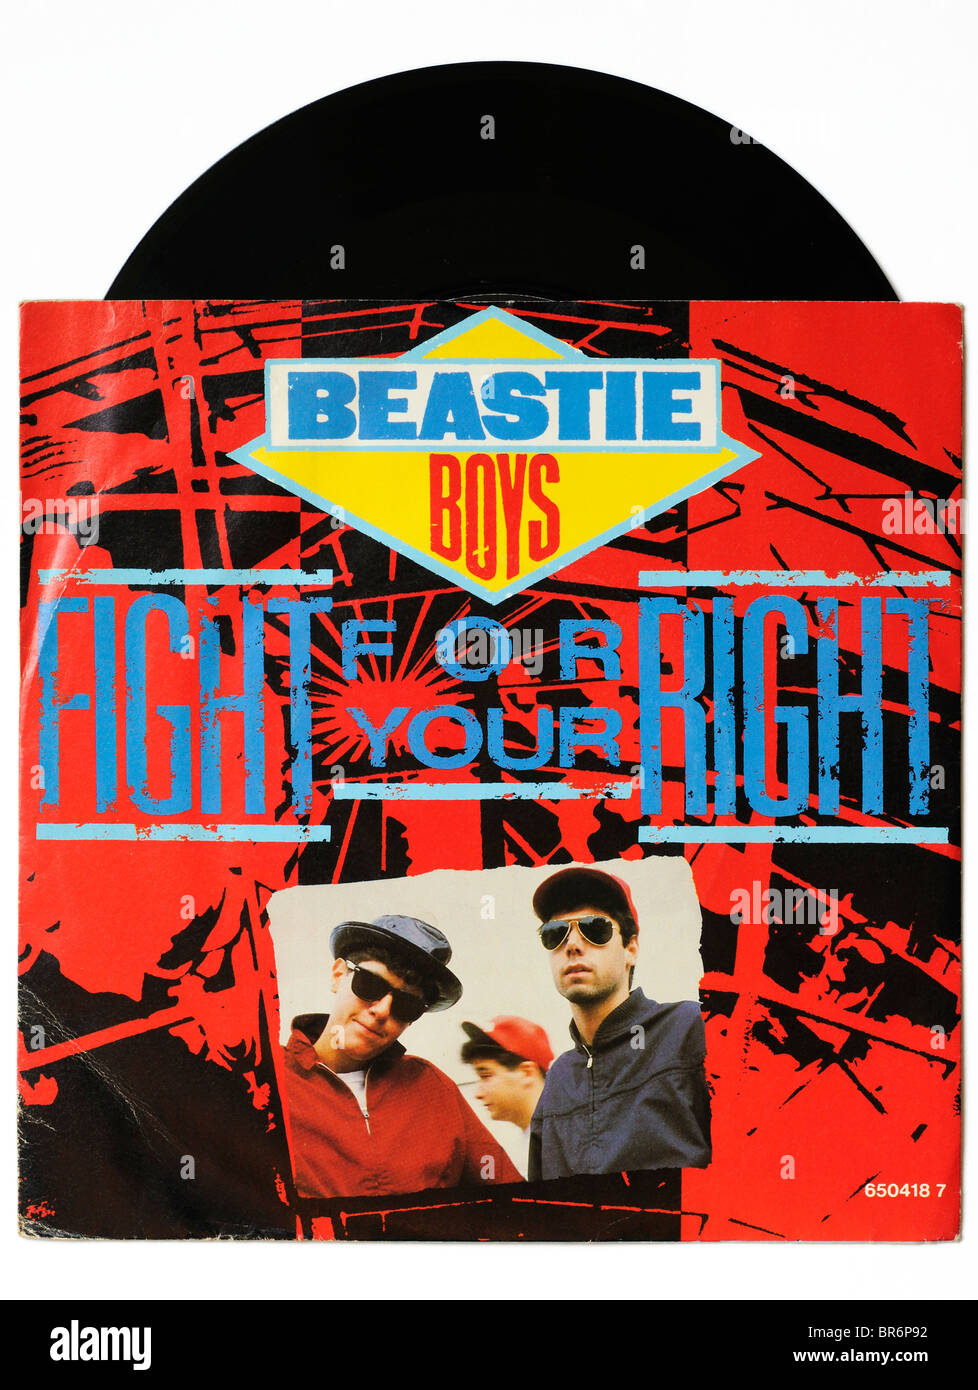 Beastie Boys Fight for your Right single - Stock Image